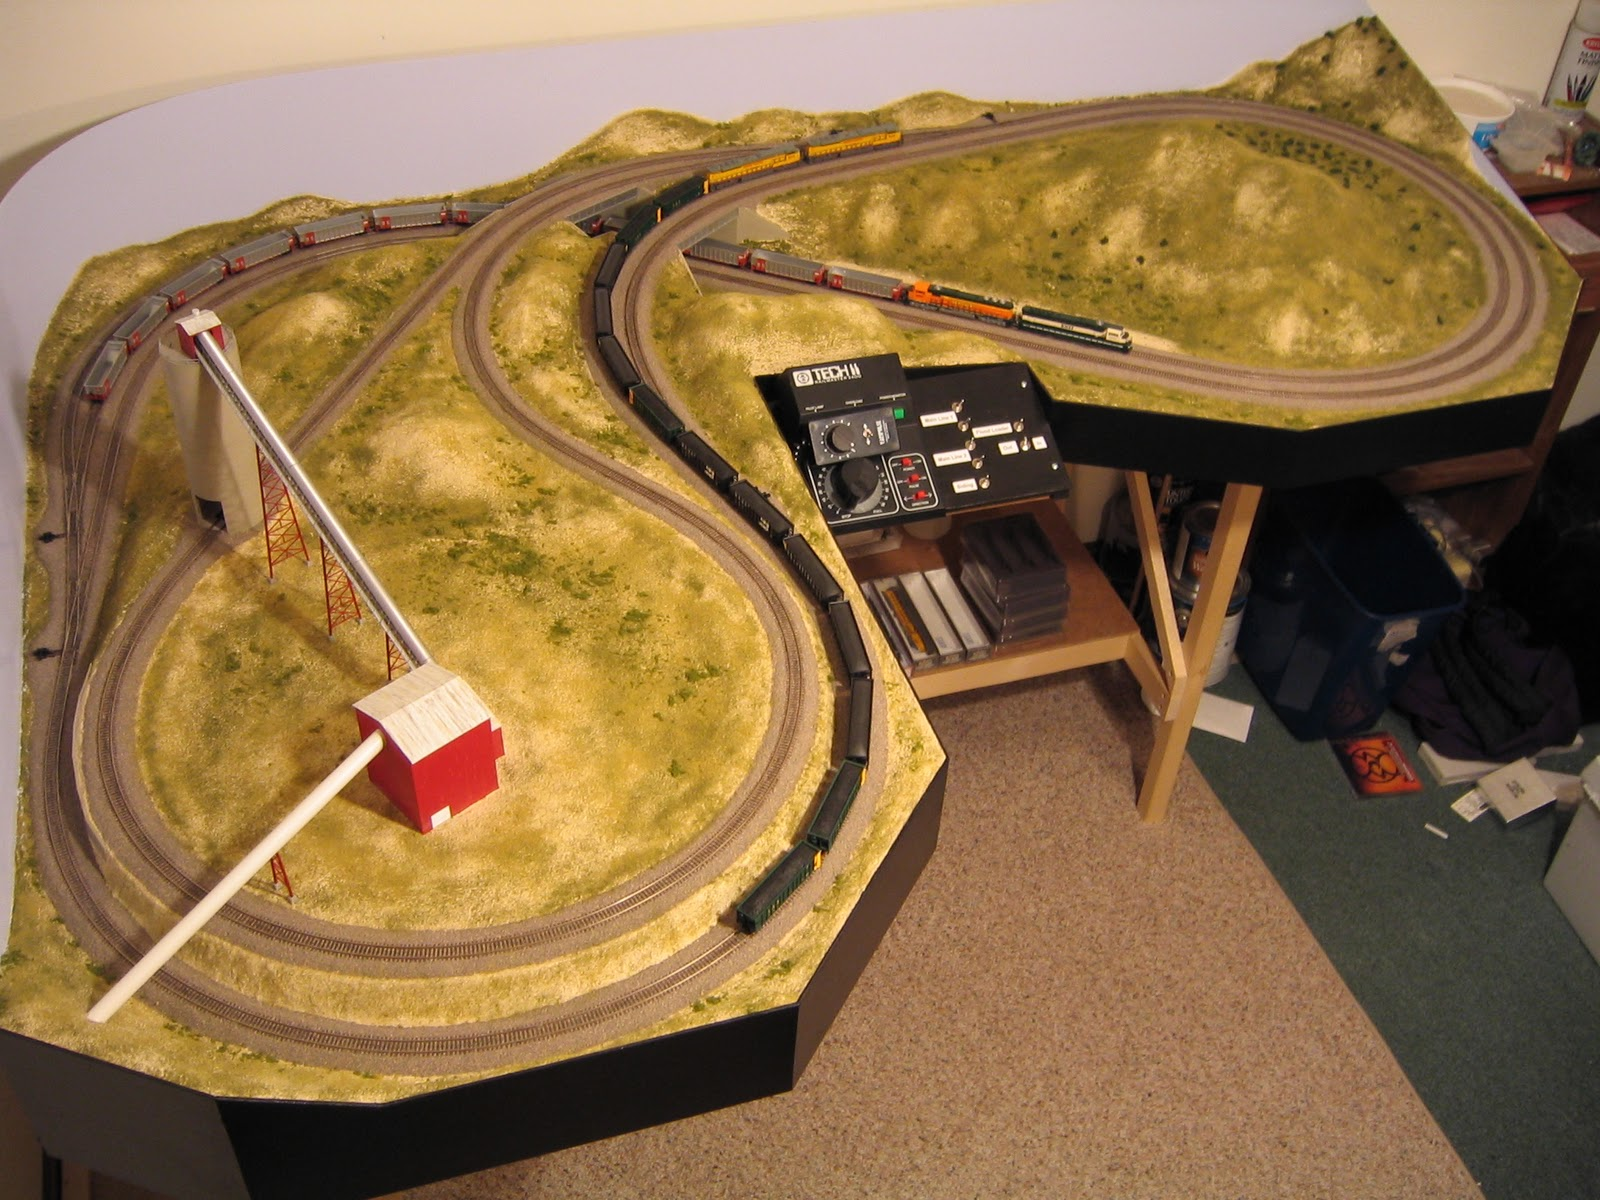 kato track wiring n scale addiction my first complete n scale model railroad  n scale addiction my first complete n scale model railroad